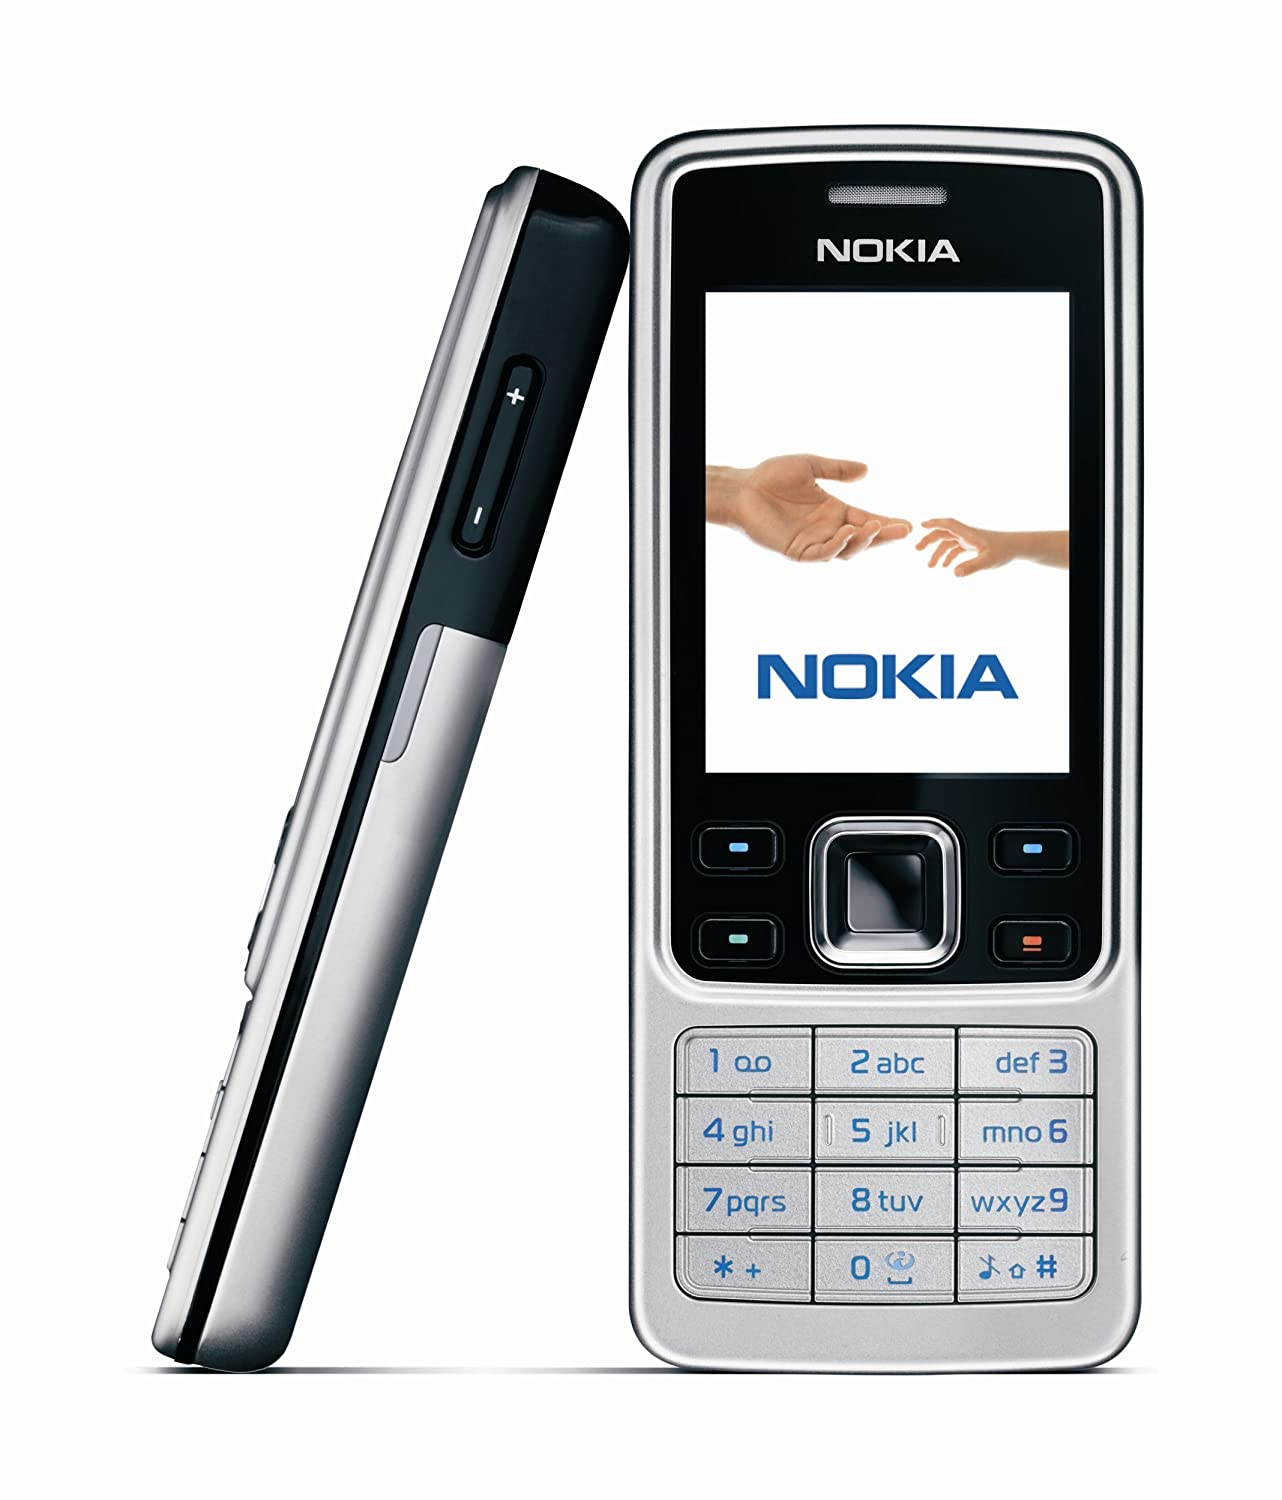 nokia 6300 ohne simlock handy 2mp kamera mp3 player. Black Bedroom Furniture Sets. Home Design Ideas